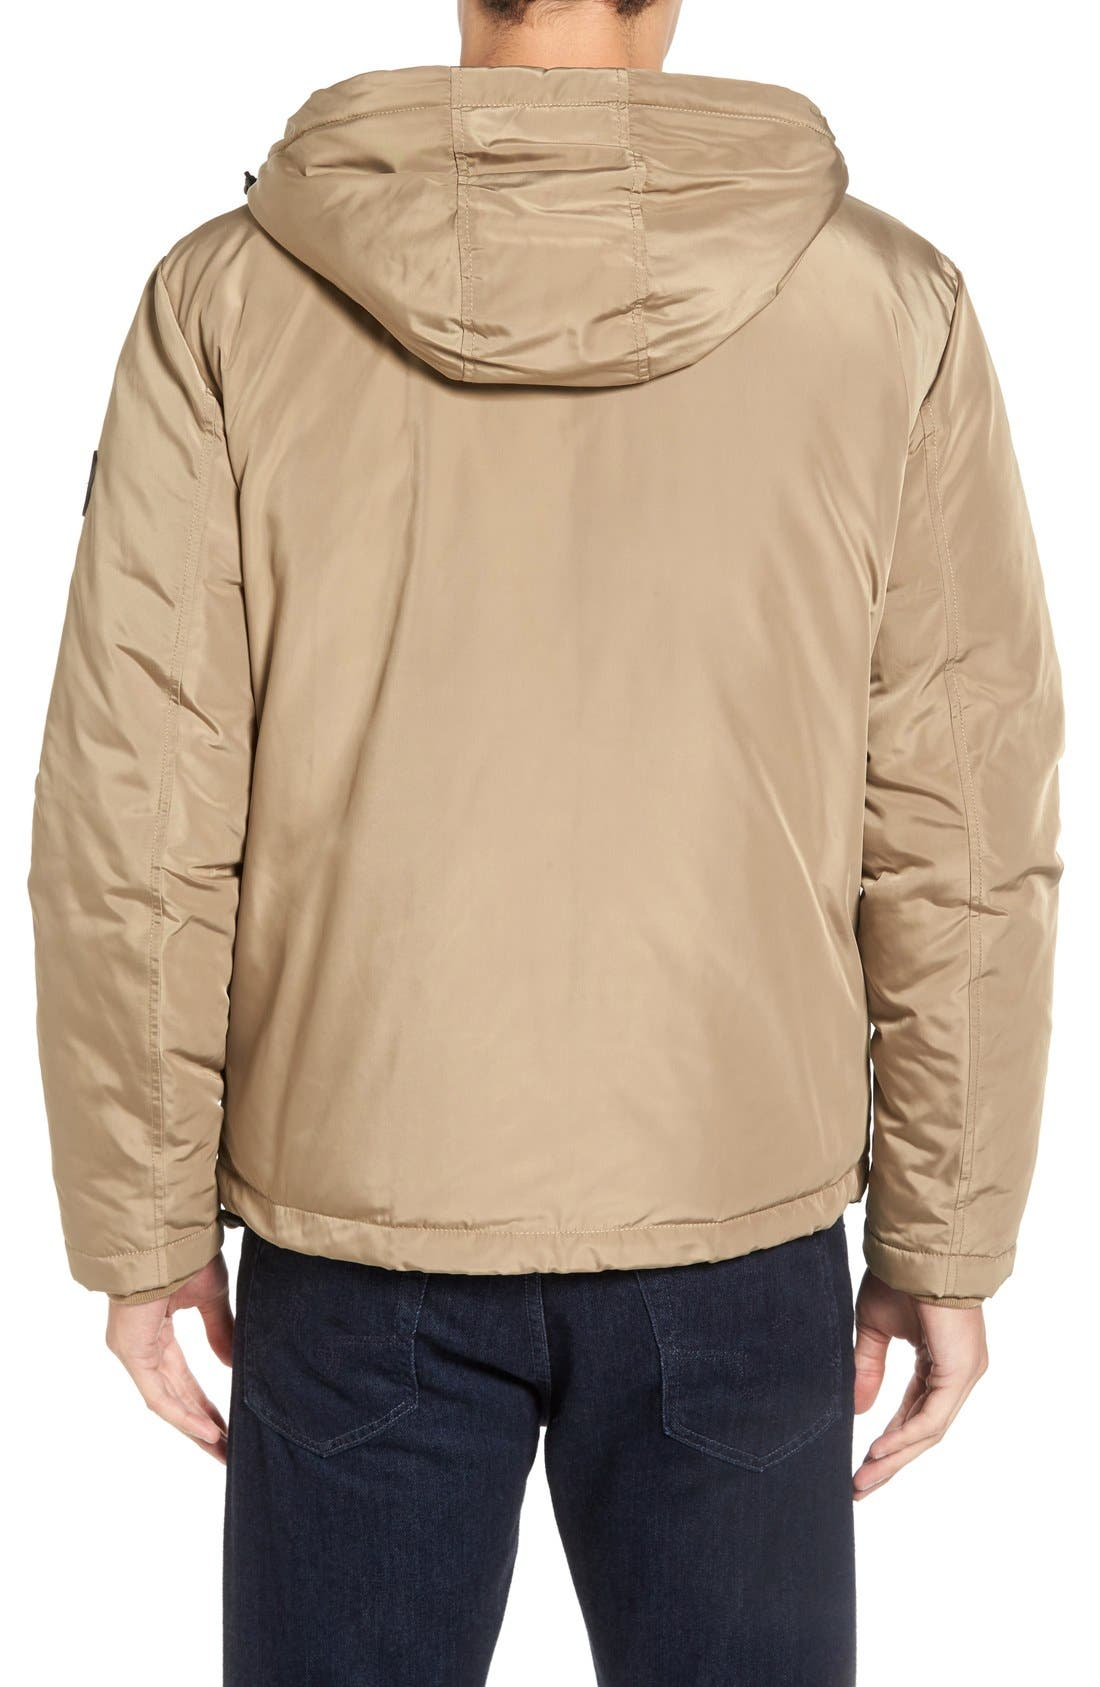 Water Resistant Insulated Jacket,                             Alternate thumbnail 2, color,                             Khaki